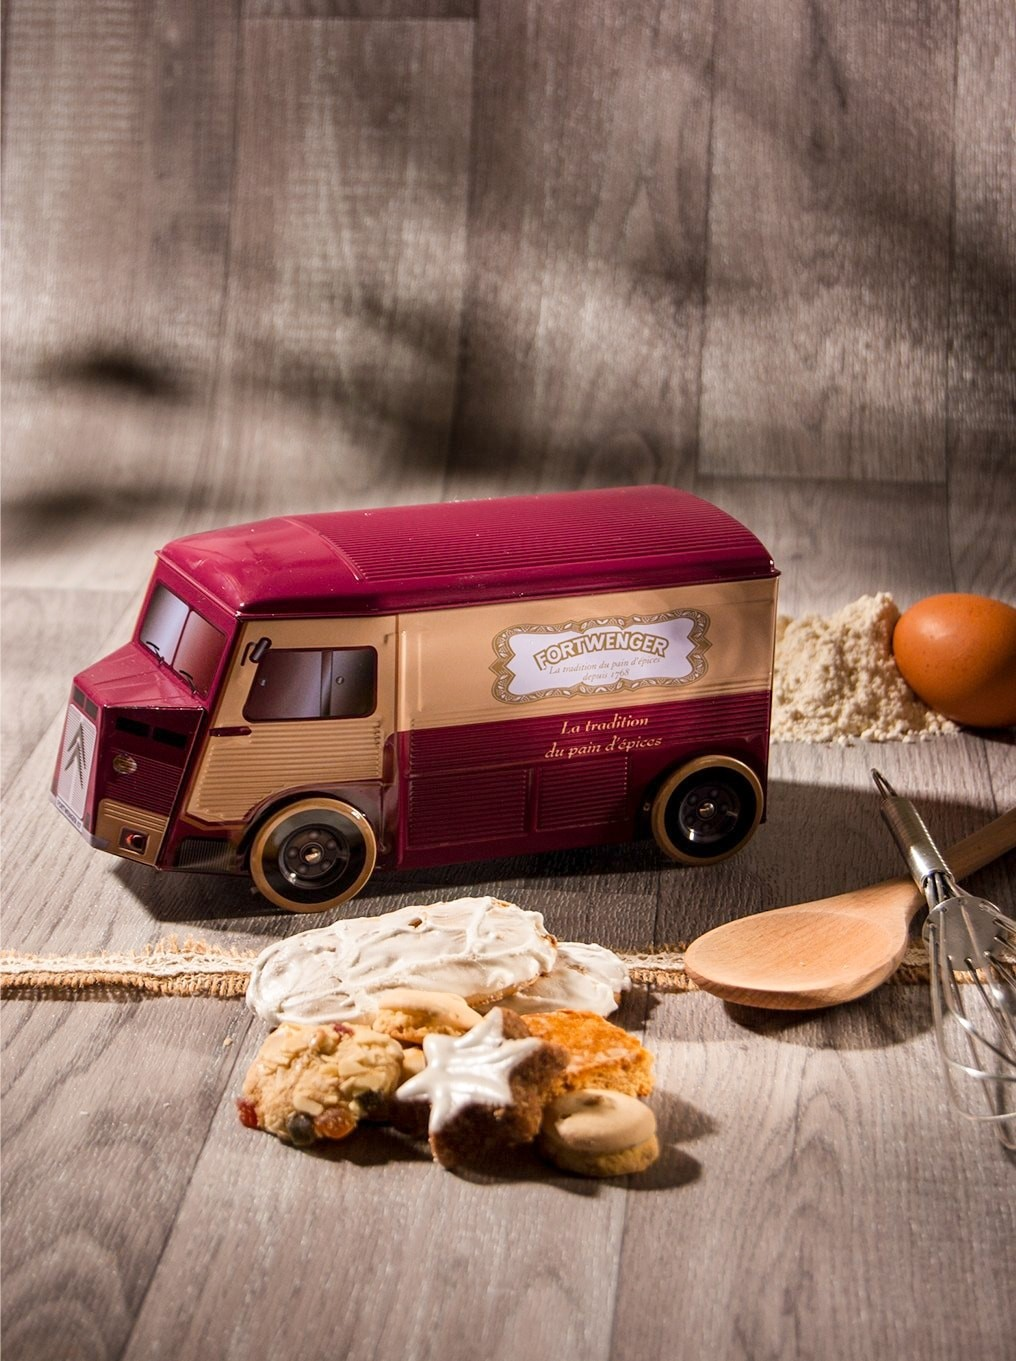 Fortwenger delivery van filled with gingerbread fingers and biscuits